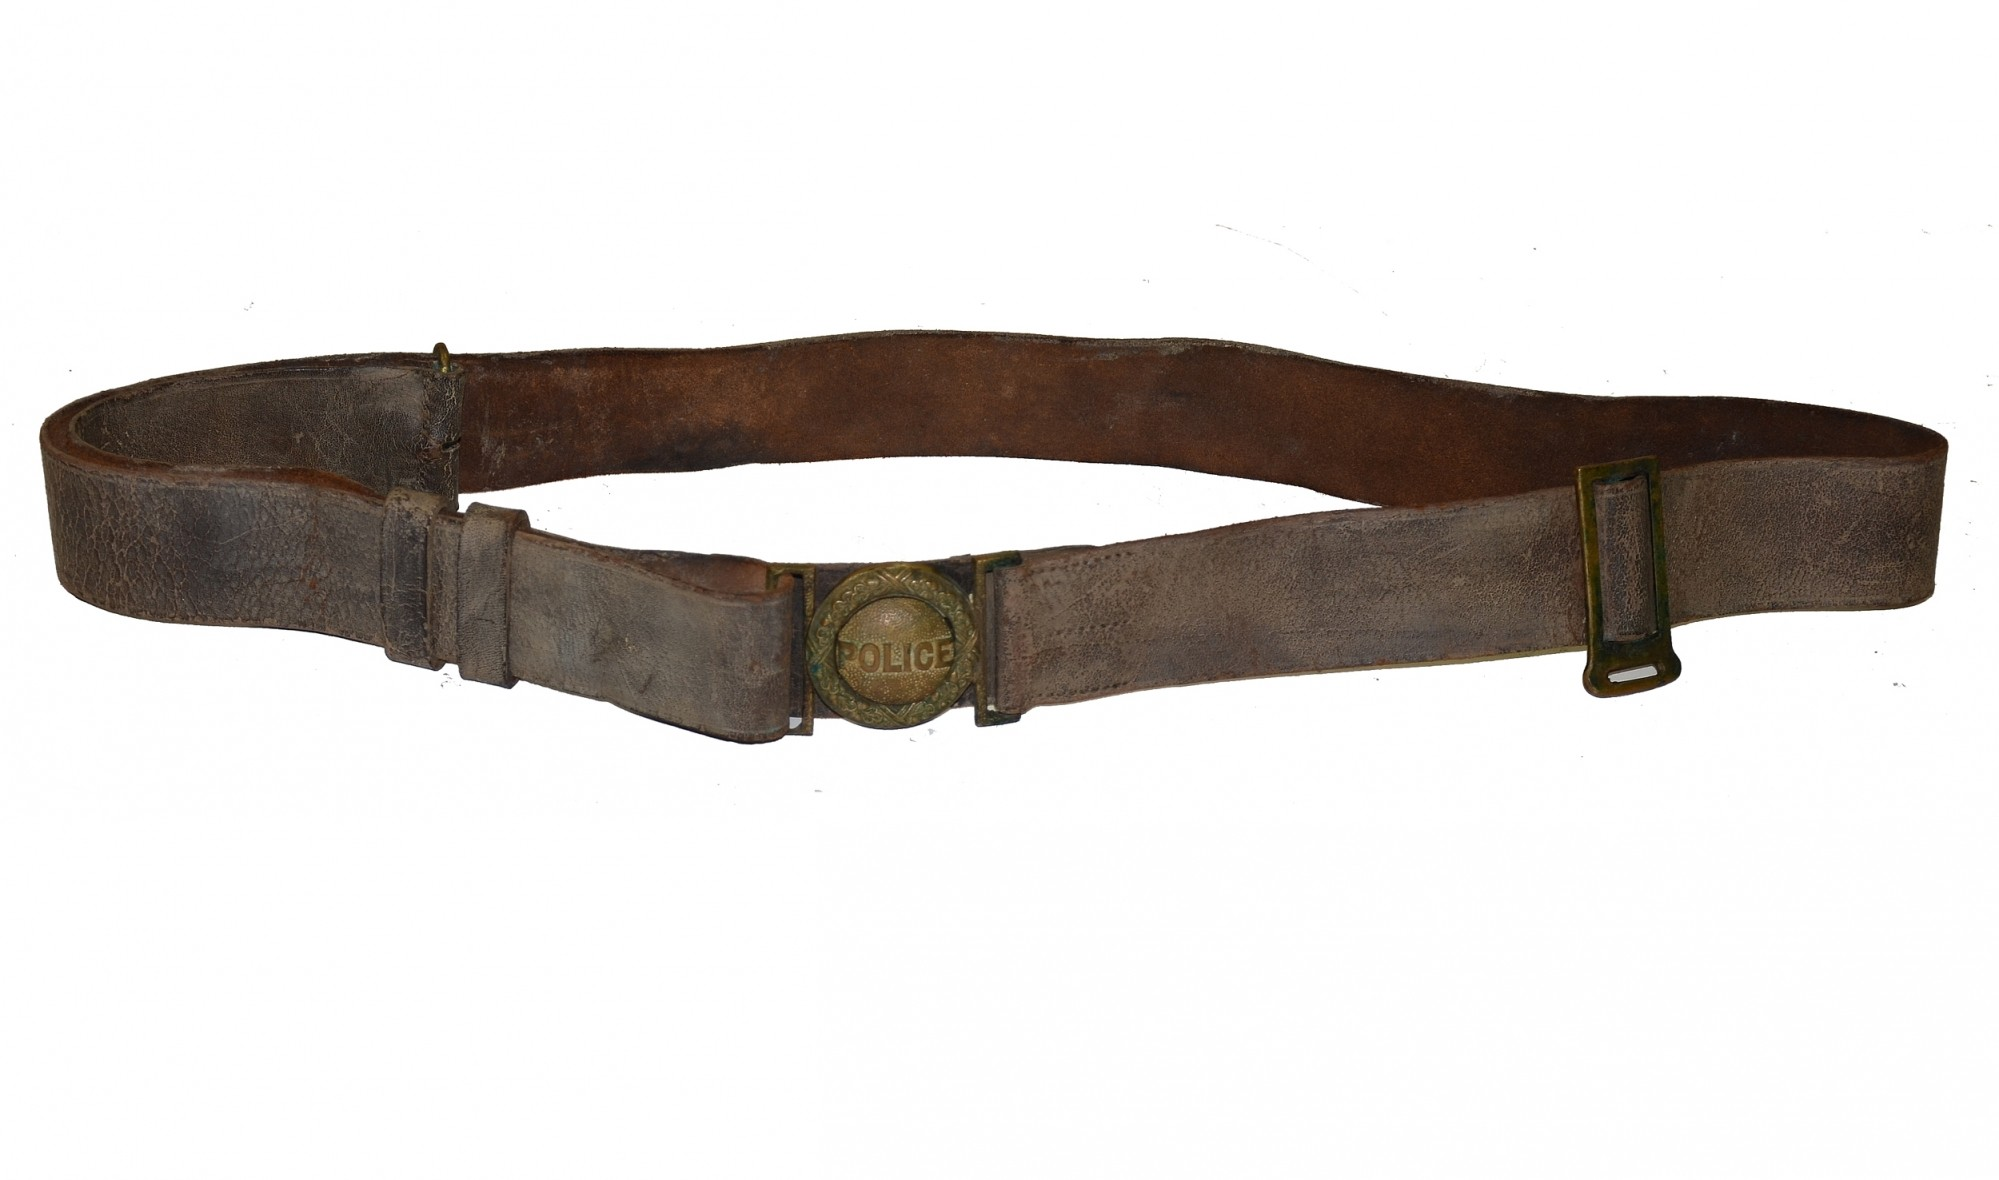 BALTIMORE CITY POLICE BELT WITH BUCKLE, CIRCA 1870-1890